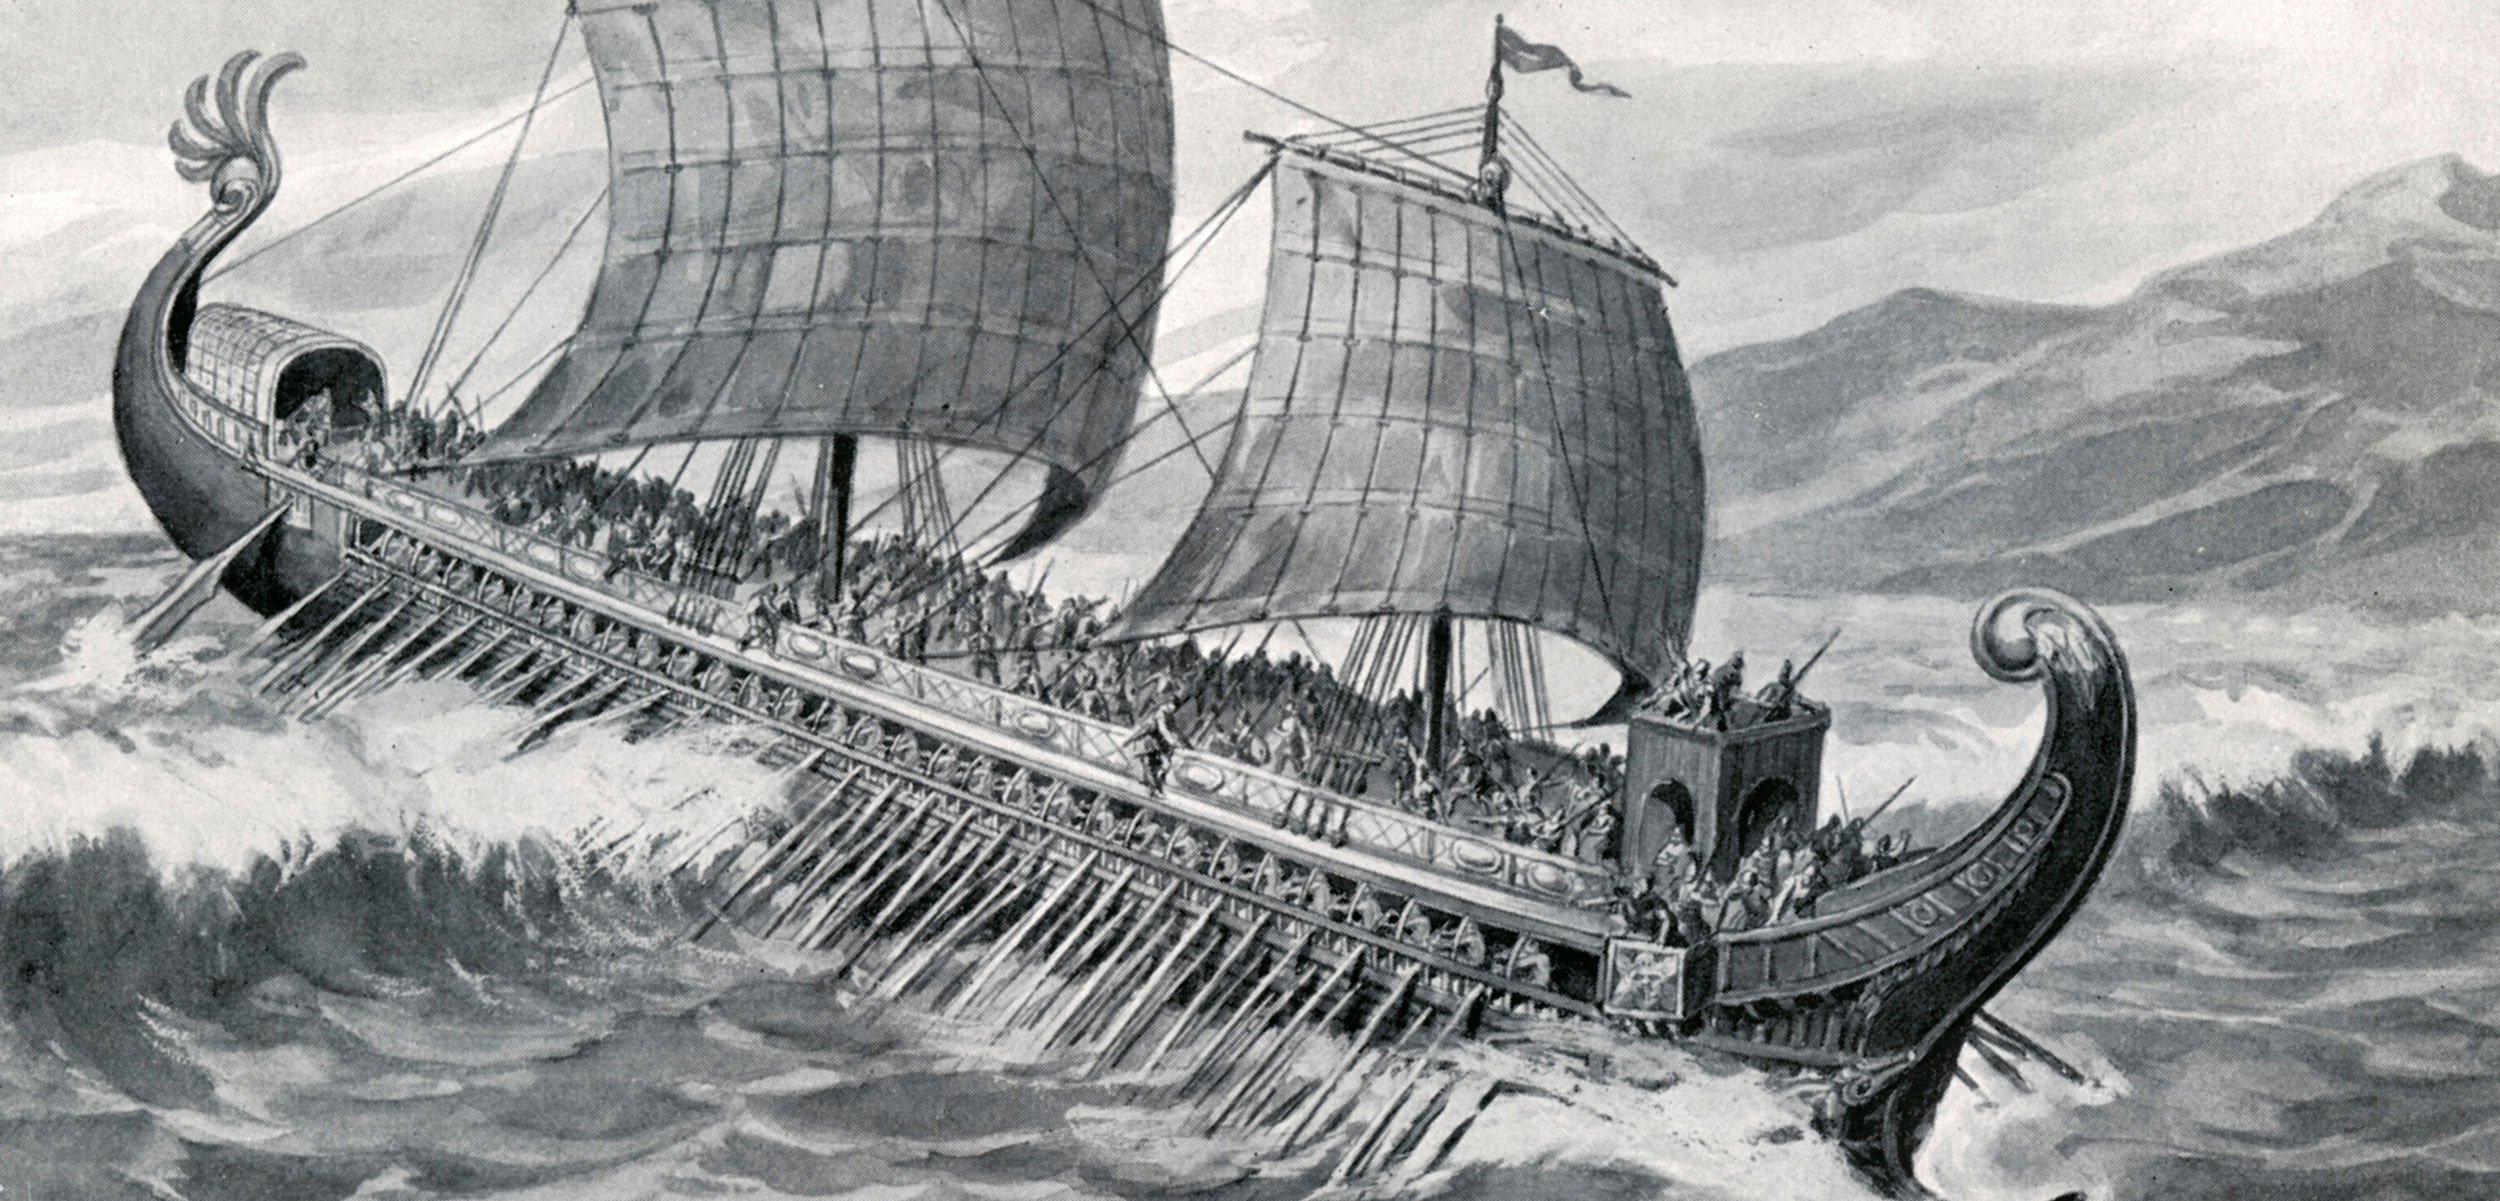 an illustration of a Greek trireme